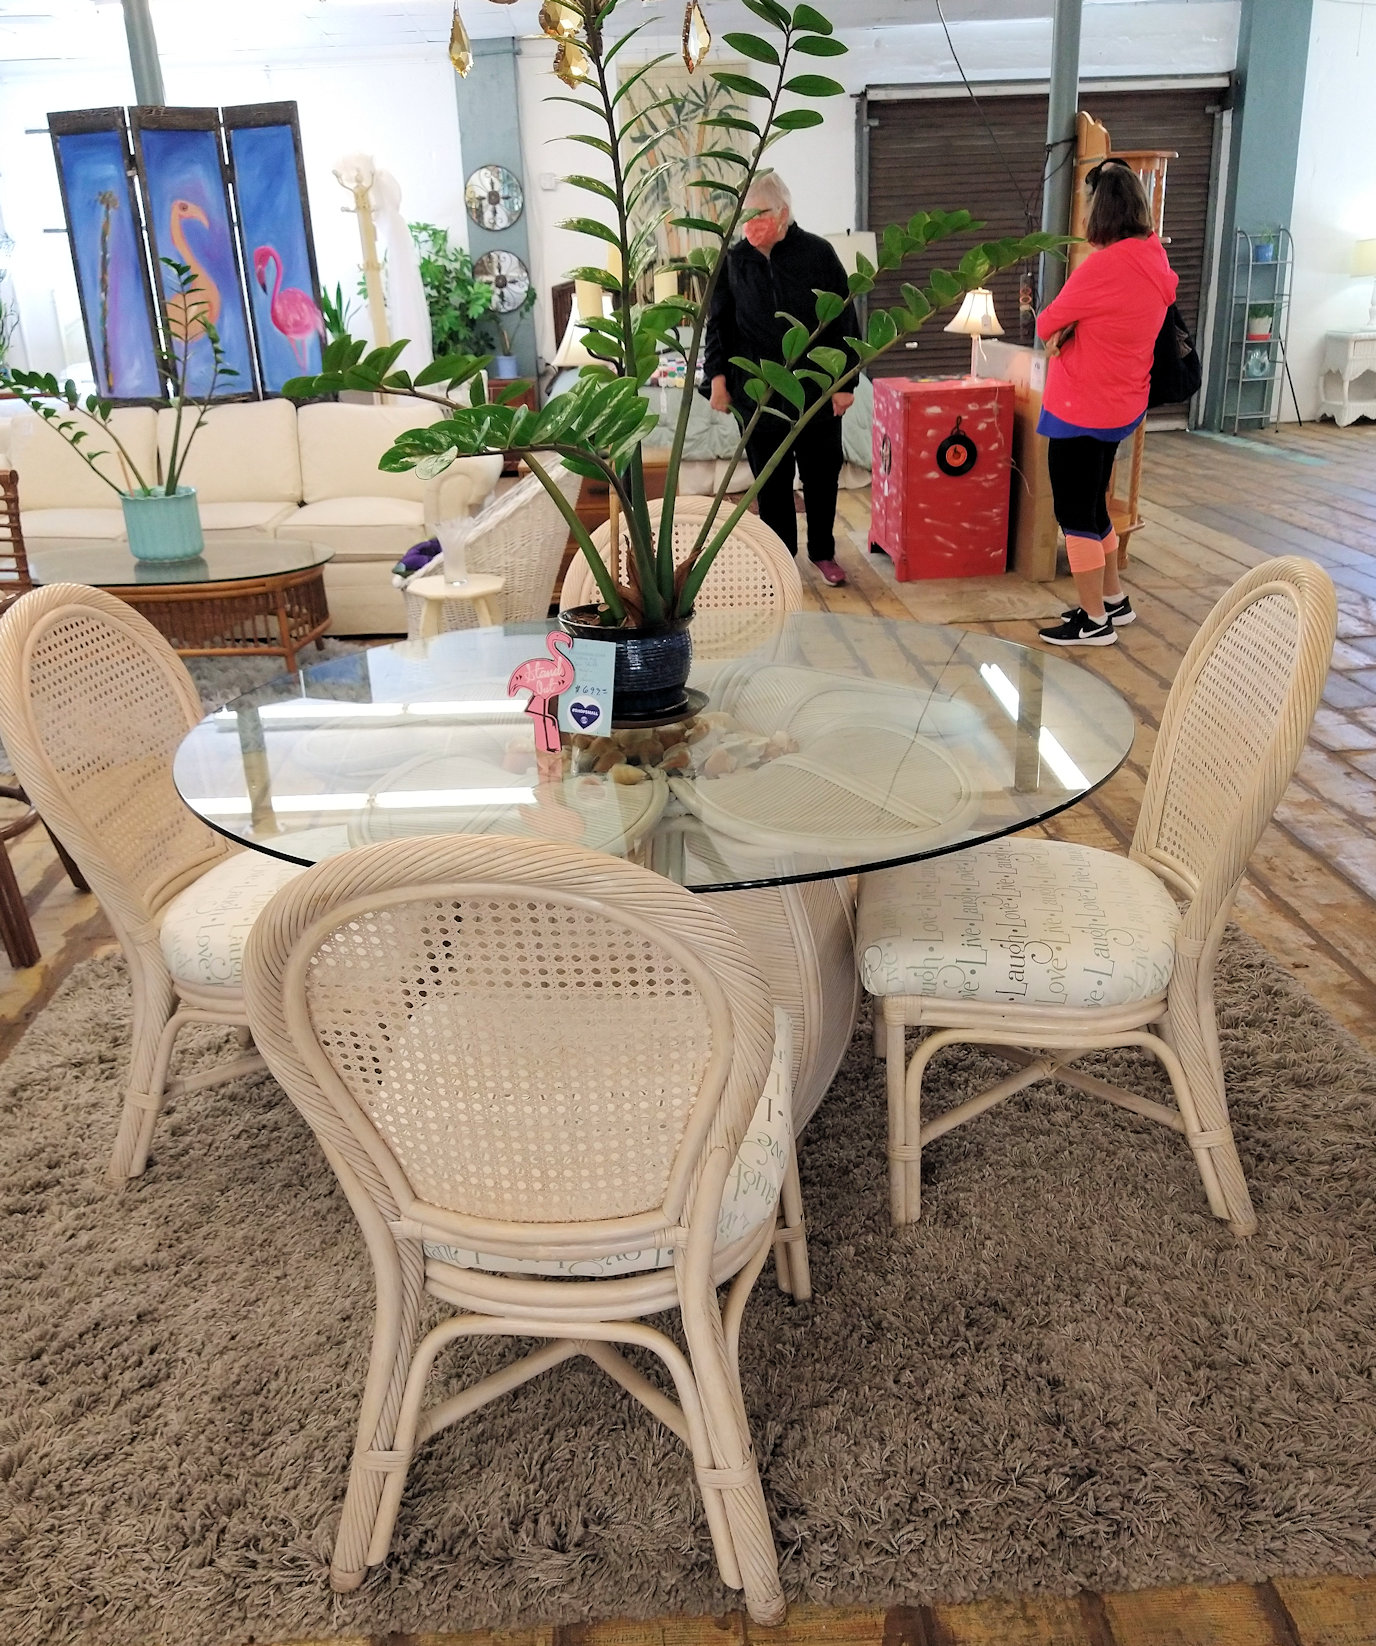 DR0088-Rattan-GlasstopTable-4chairs